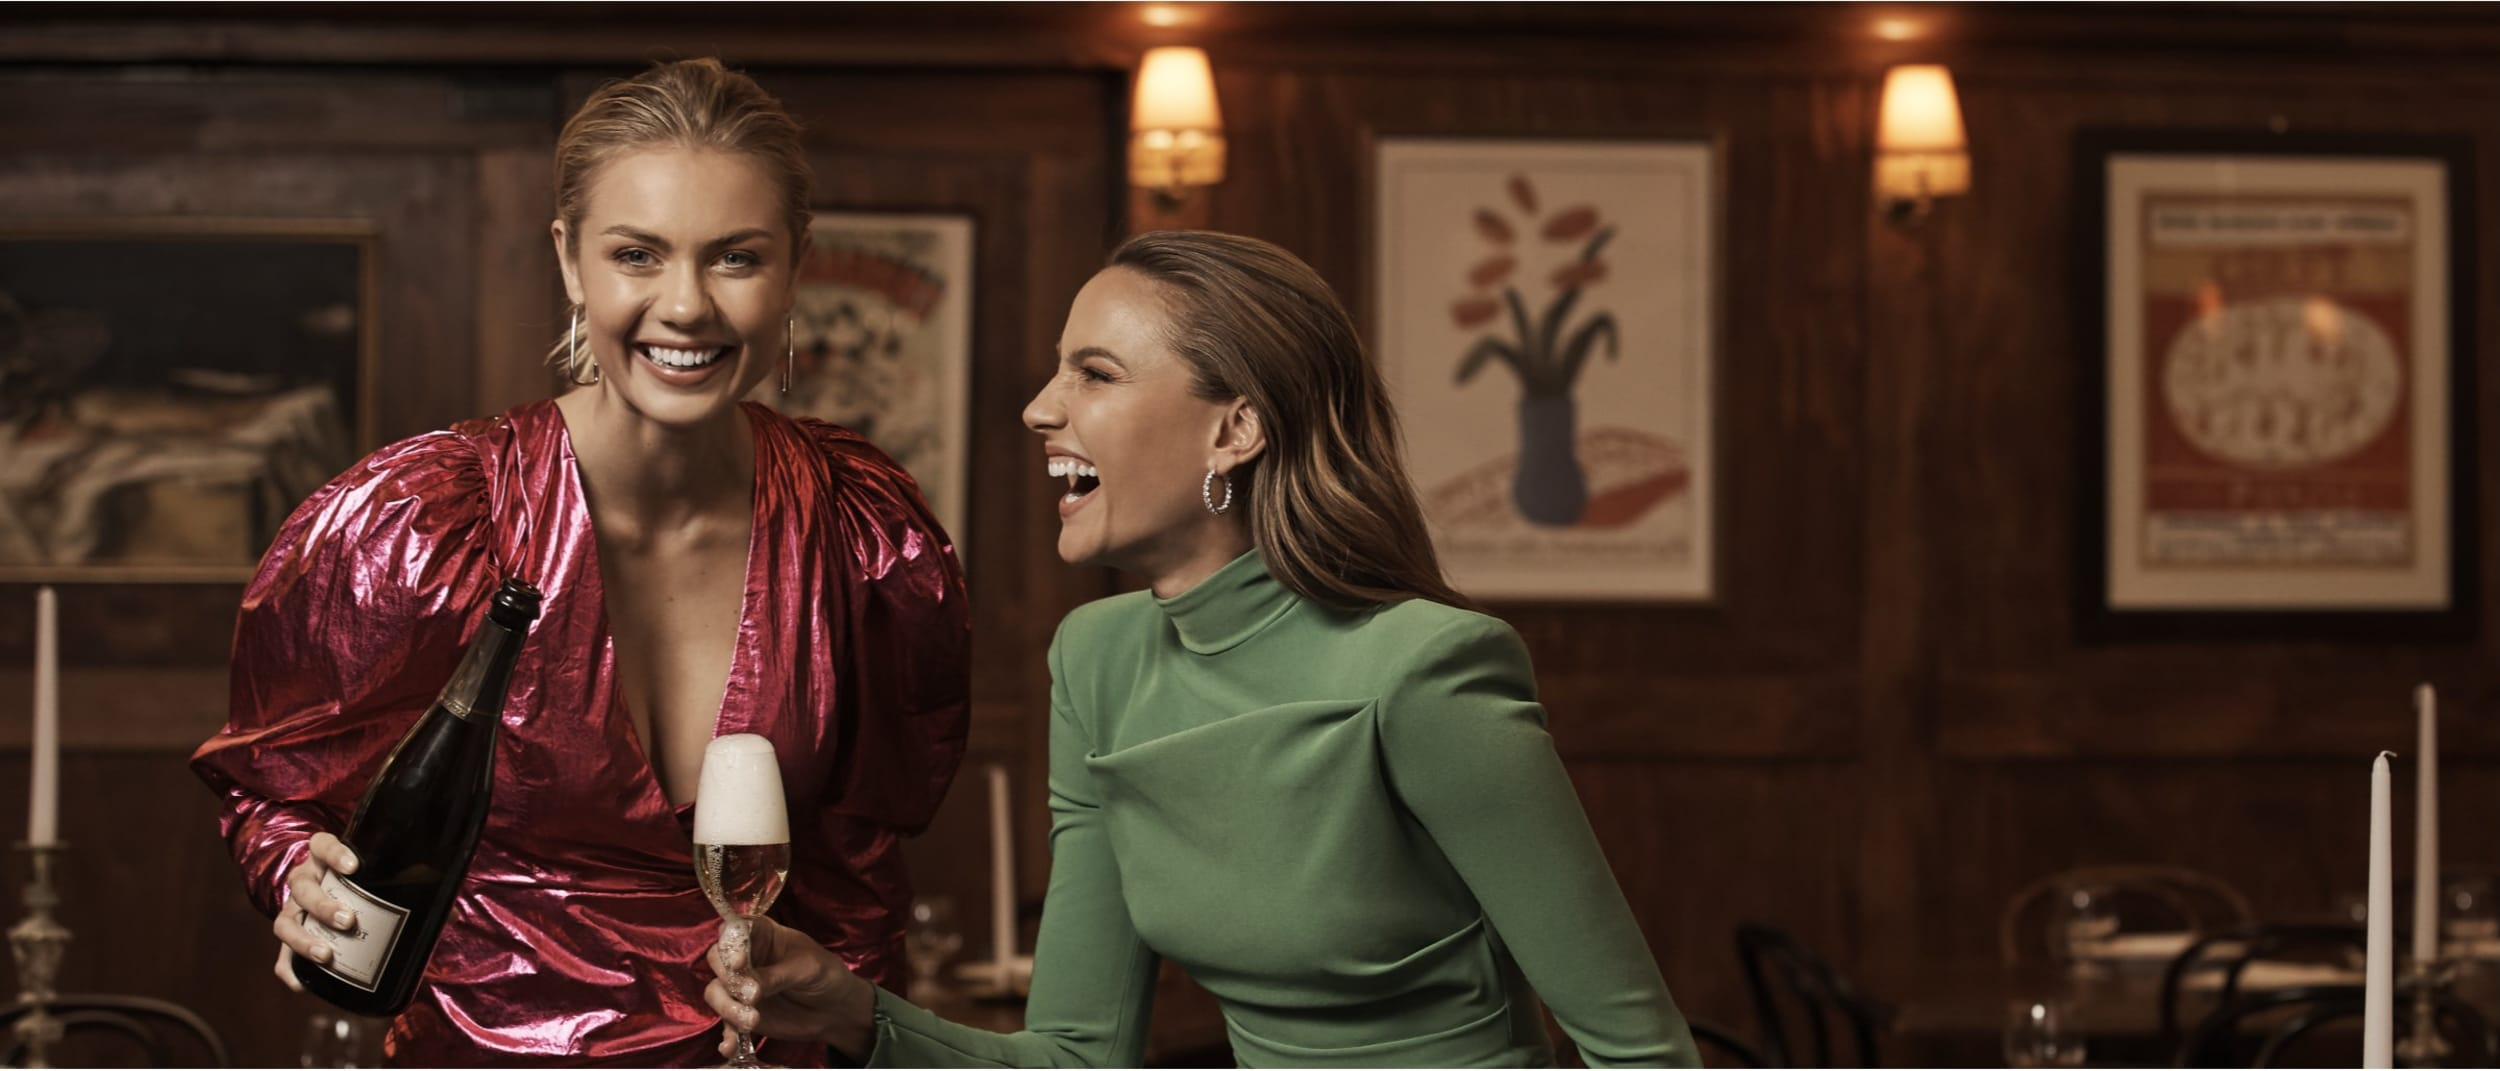 Myer: After Dark - Sip, Shop, Play